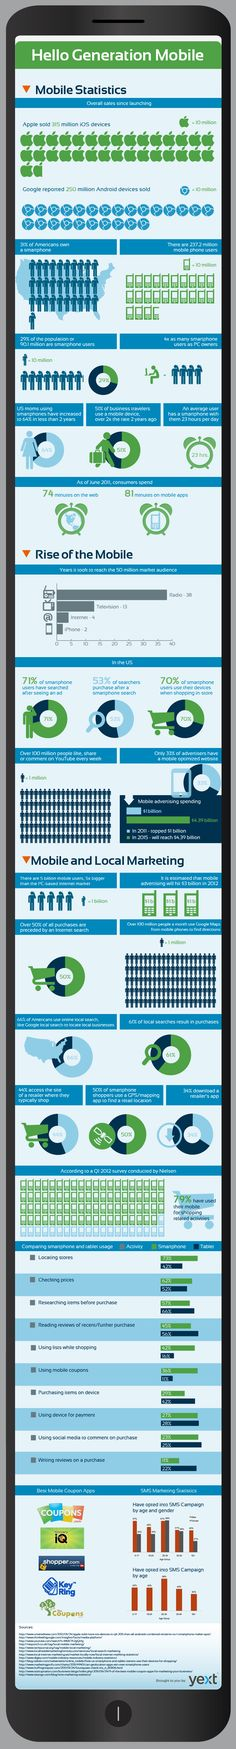 #INFOGRAPHIC: Is #Mobile #Advertising the Future of #Marketing?